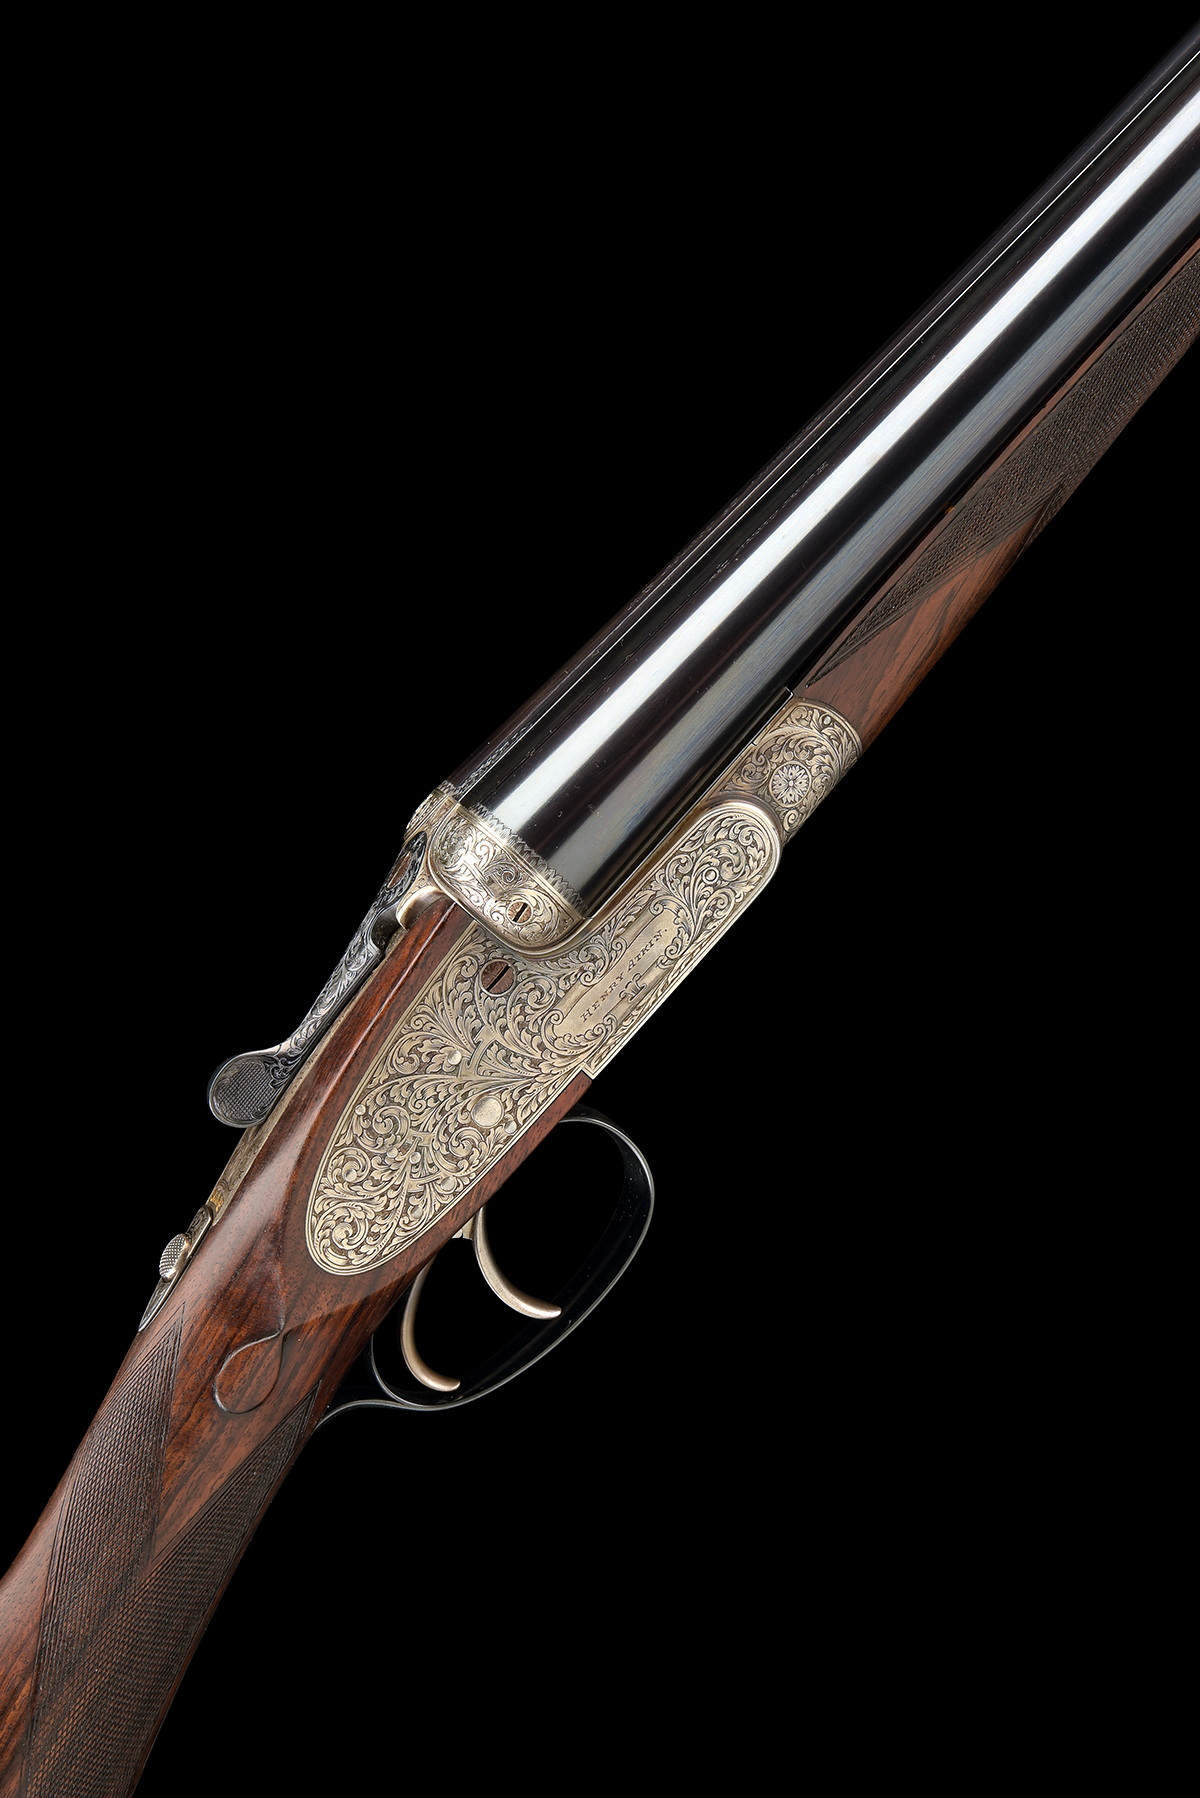 FORMERLY THE PROPERTY OF GOUGH THOMAS HENRY ATKIN A FINE, KELL-ENGRAVED 12-BORE SPRING-OPENING